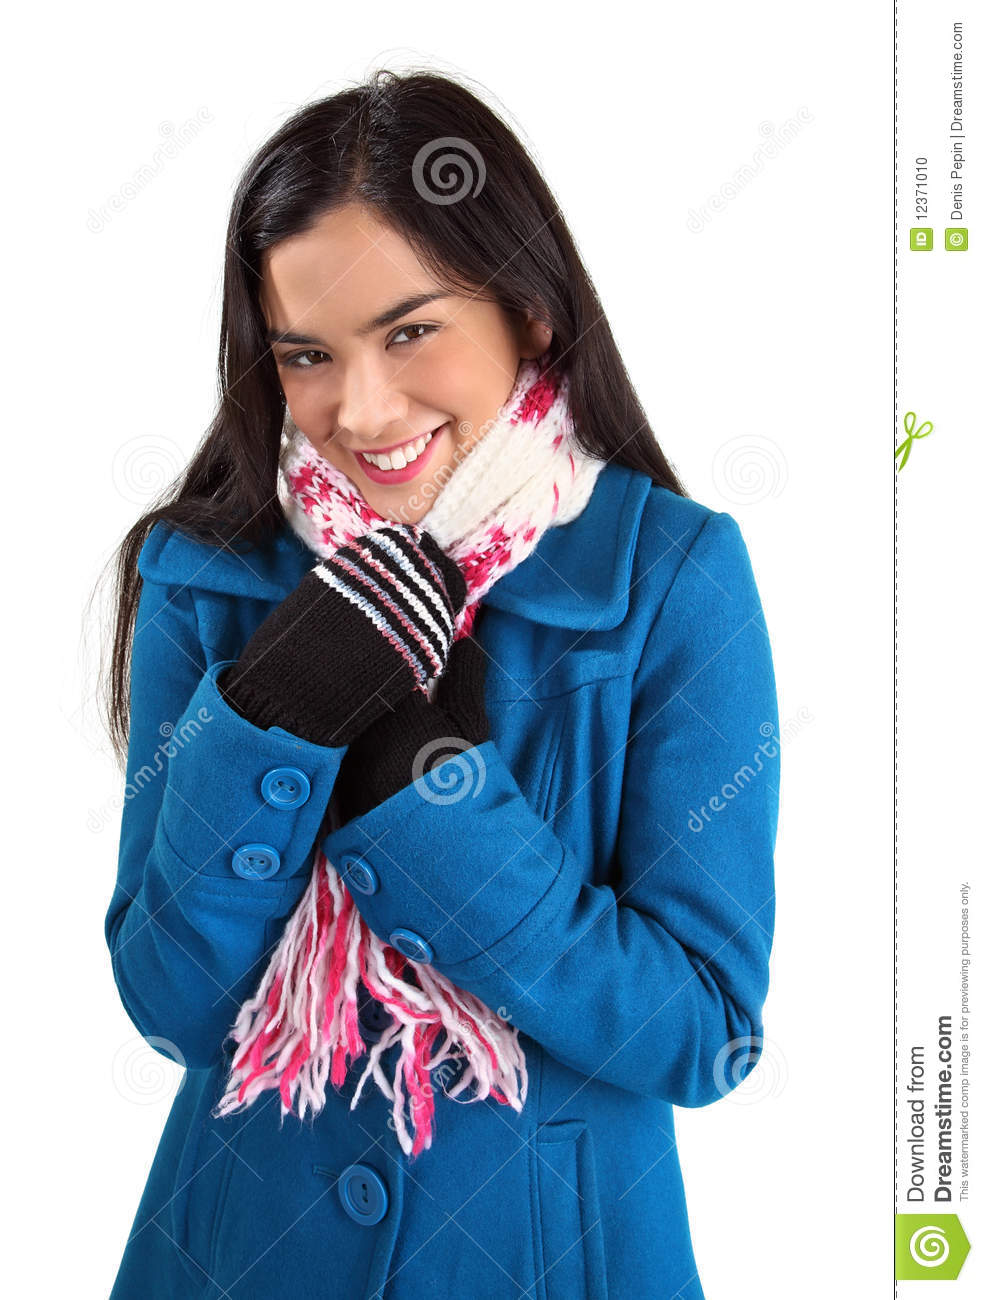 ... Woman Wearing A Scarf And A Winter Coat Stock Photo - Image: 12371010